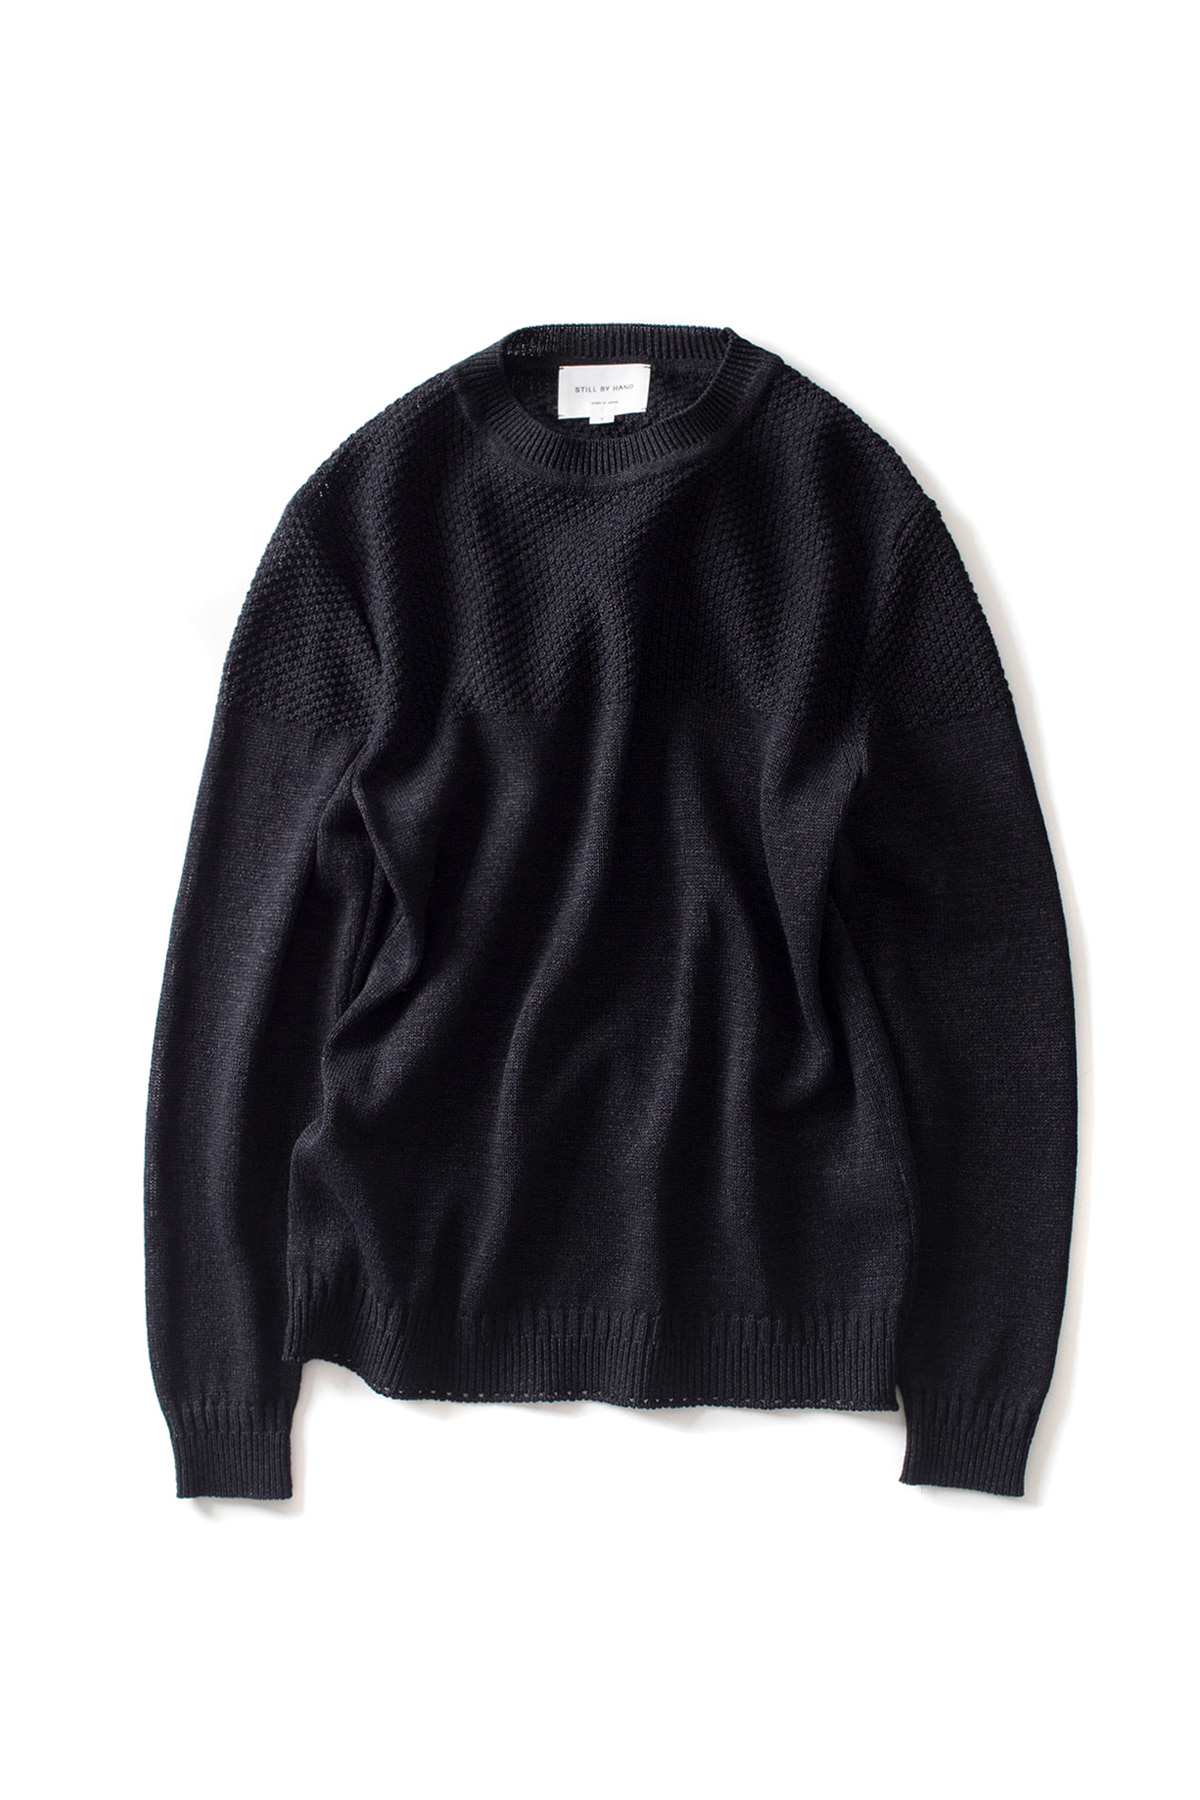 Still by Hand : Long Sleeve Paper Knit (Black)